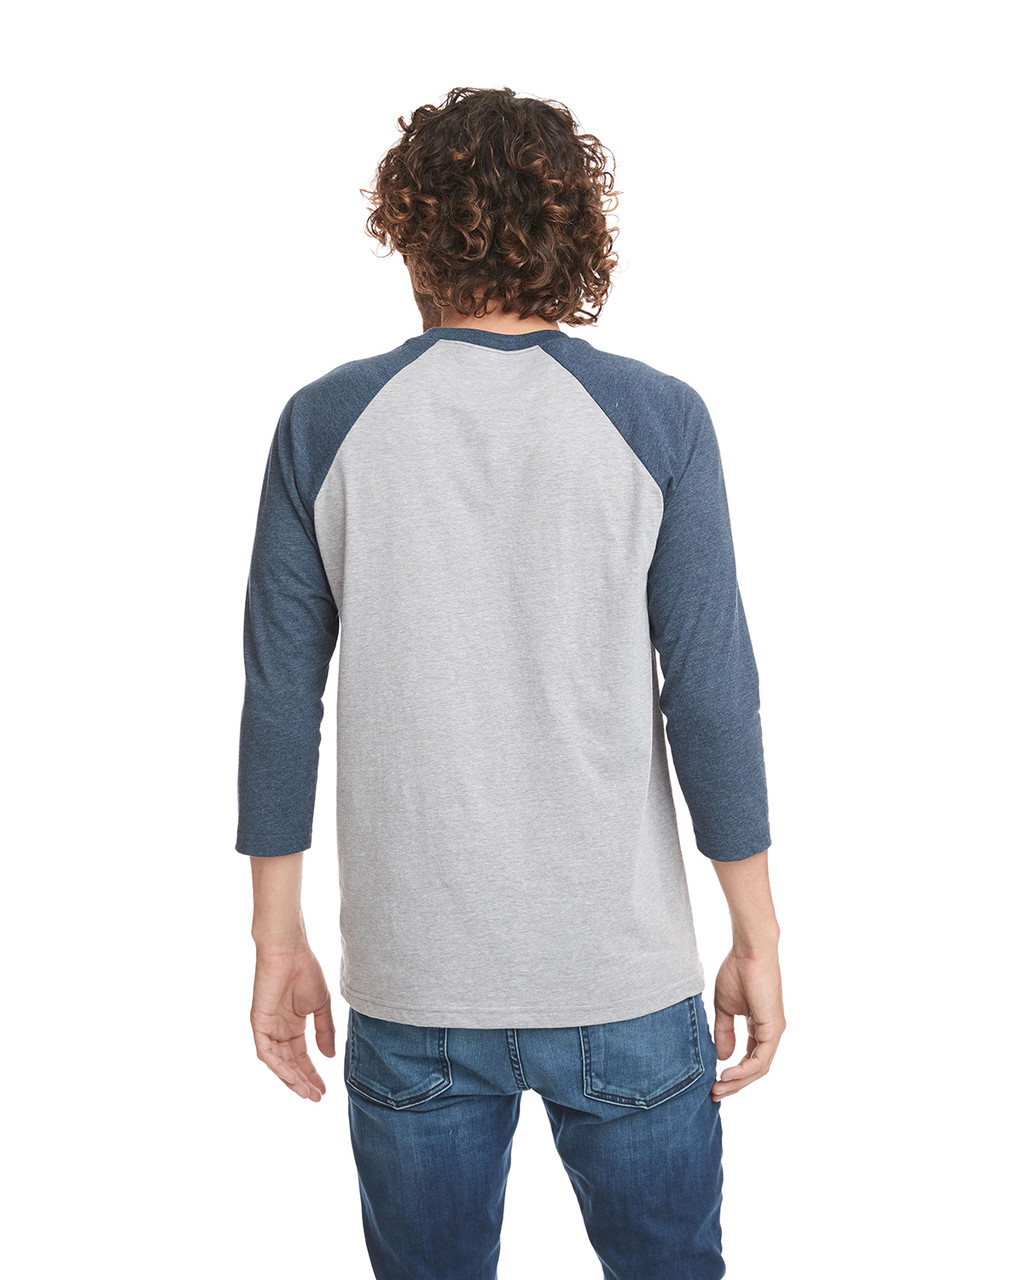 Midnight/Dark Heather Grey - Back, 6251 Next Level Unisex CVC 3/4 Sleeve Raglan Baseball T-Shirt | BlankClothing.ca